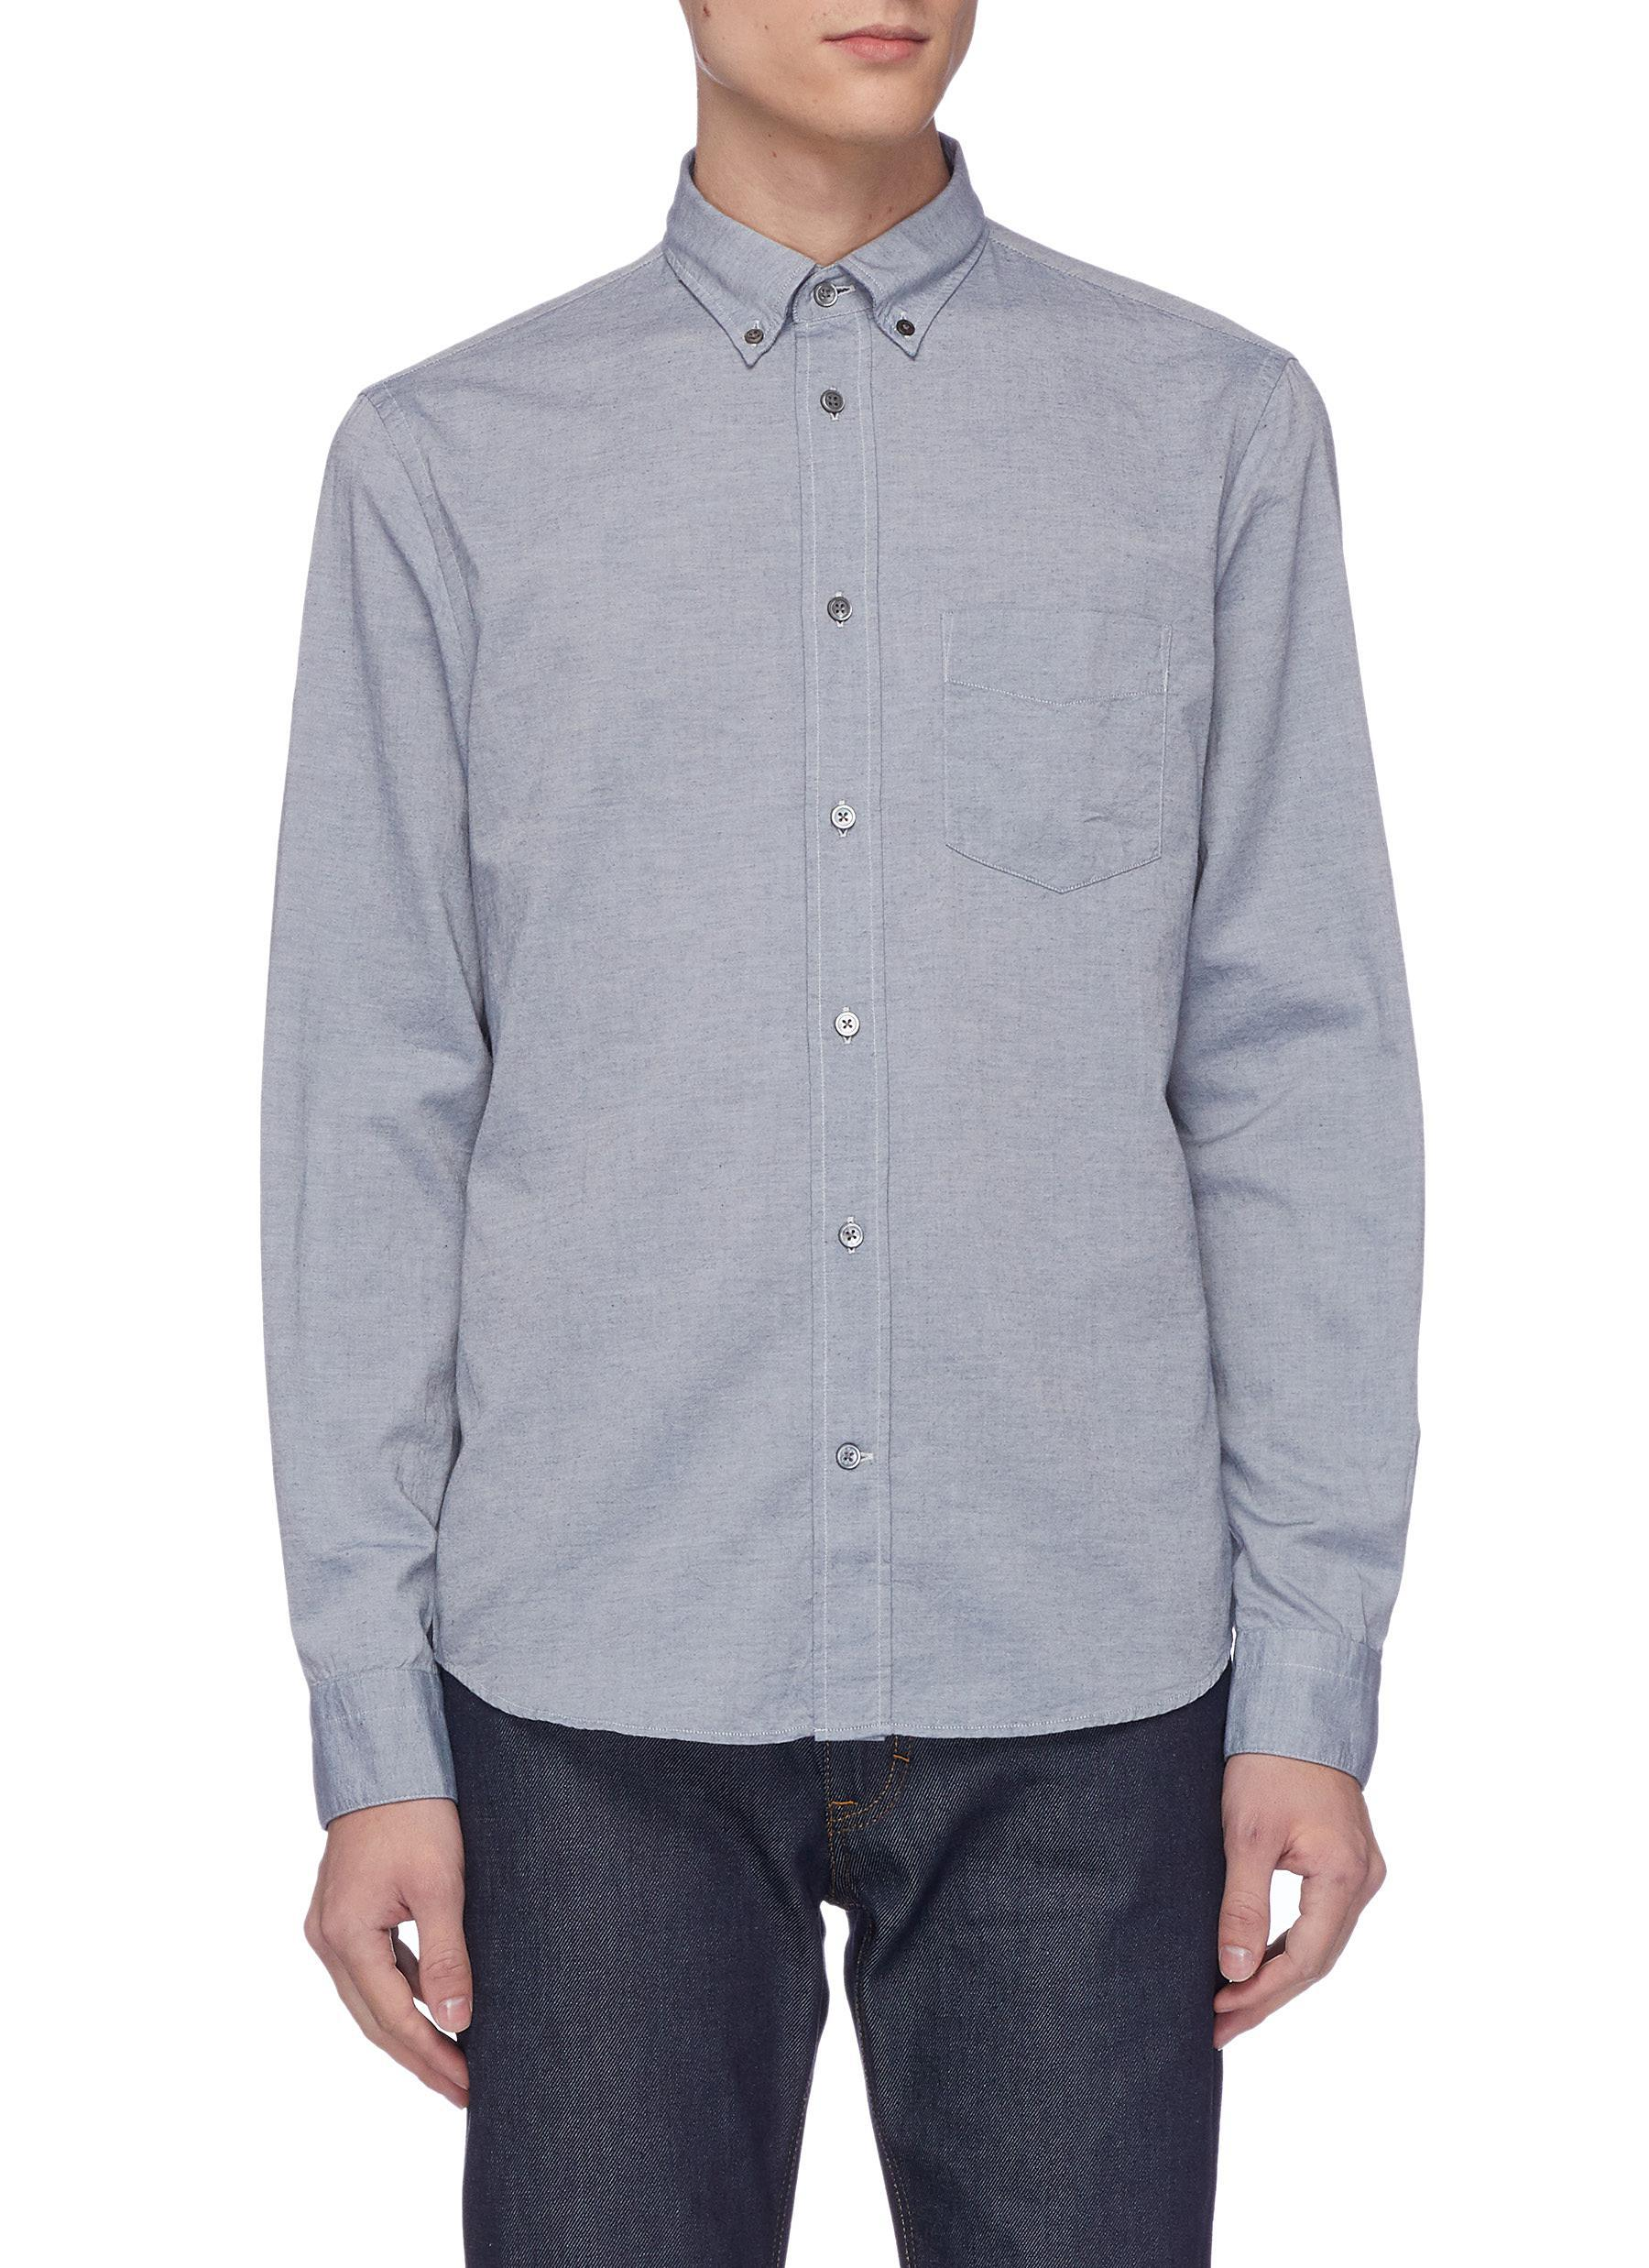 a57dfb2256 Acne Studios  isherwood  Chambray Shirt in Blue for Men - Lyst